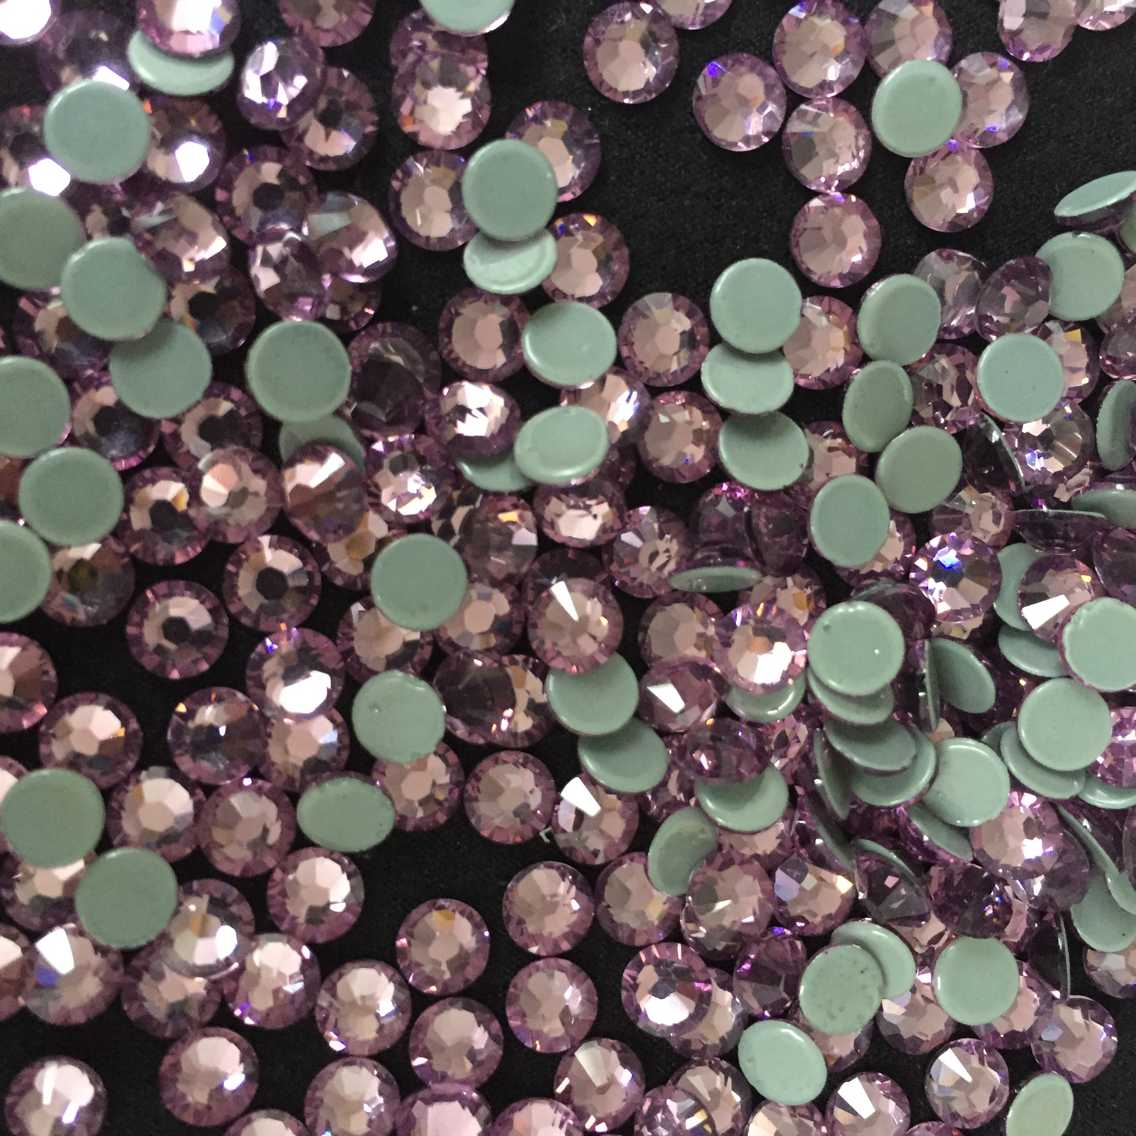 Jpstrass-Find Rhinestone Hotfix Hotfix Rhinestones Wholesale From Jp Strass